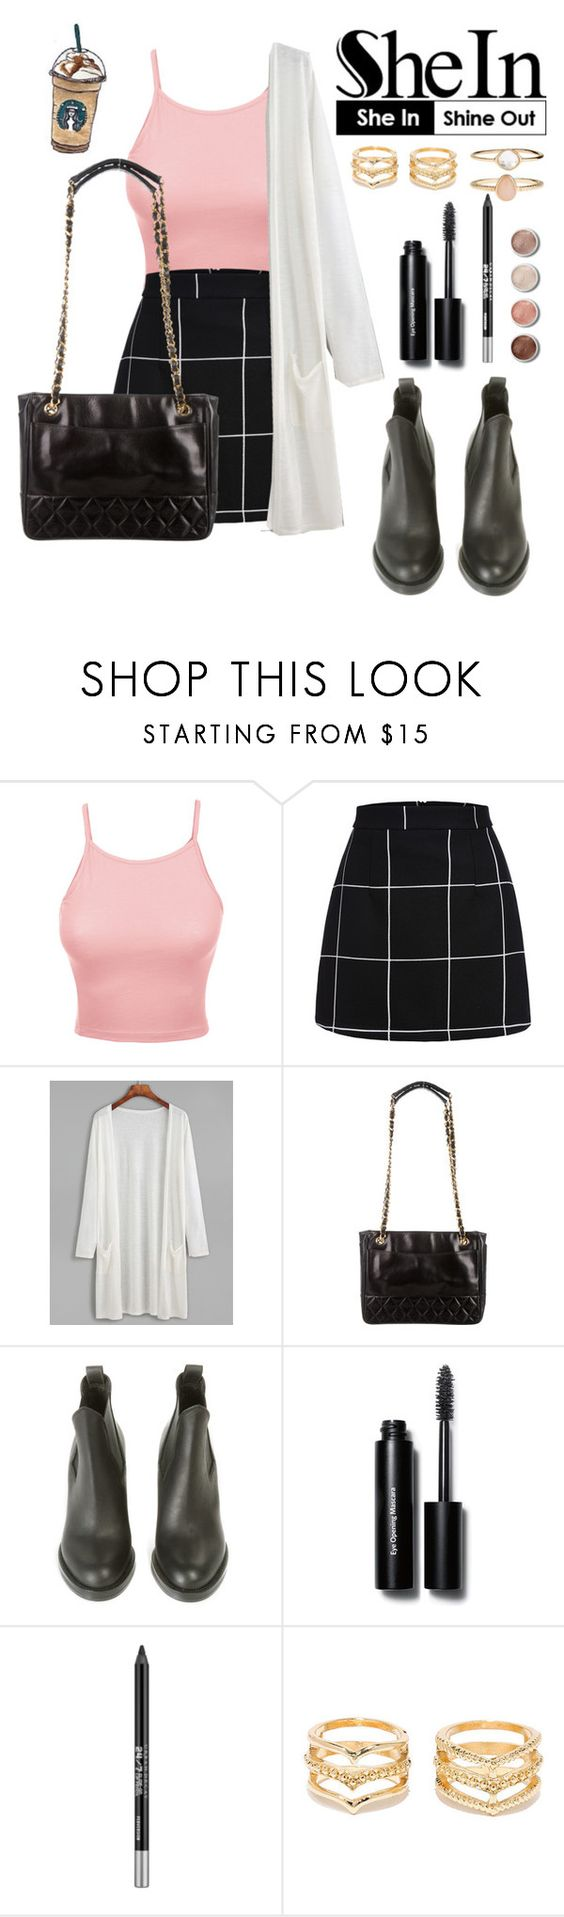 """""""Untitled #253"""" by dlnphung ❤ liked on Polyvore featuring LE3NO, WithChic, Chanel, Acne Studios, Bobbi Brown Cosmetics, Urban Decay, Terre Mère, LULUS and Accessorize"""